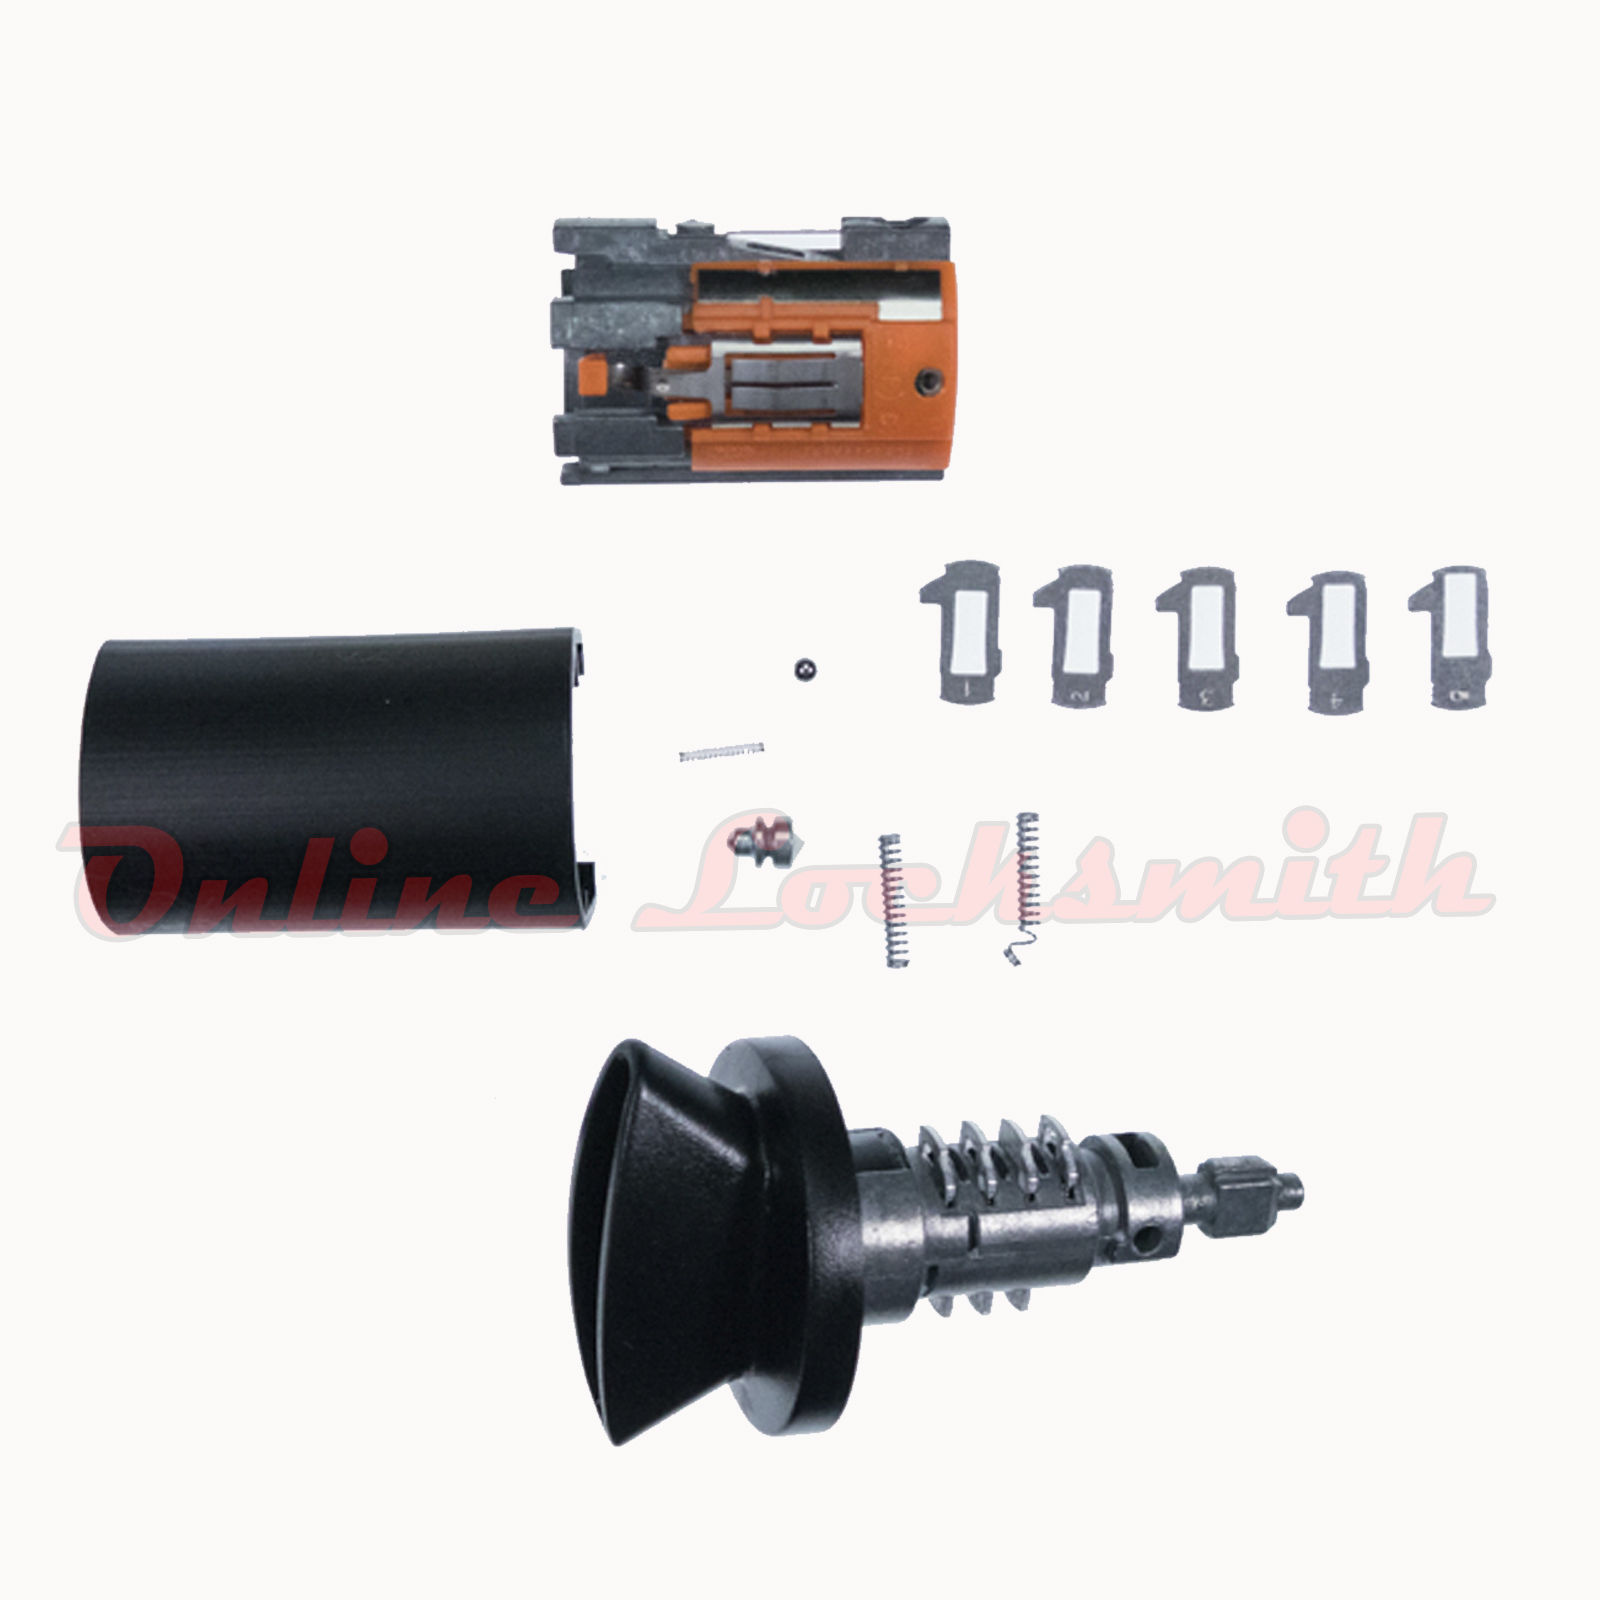 Ignition Lock Cylinder Replacement >> 707624 Ignition Switch Cylinder Replacement Lock Kit Ford Lincoln Mercury Uncoded